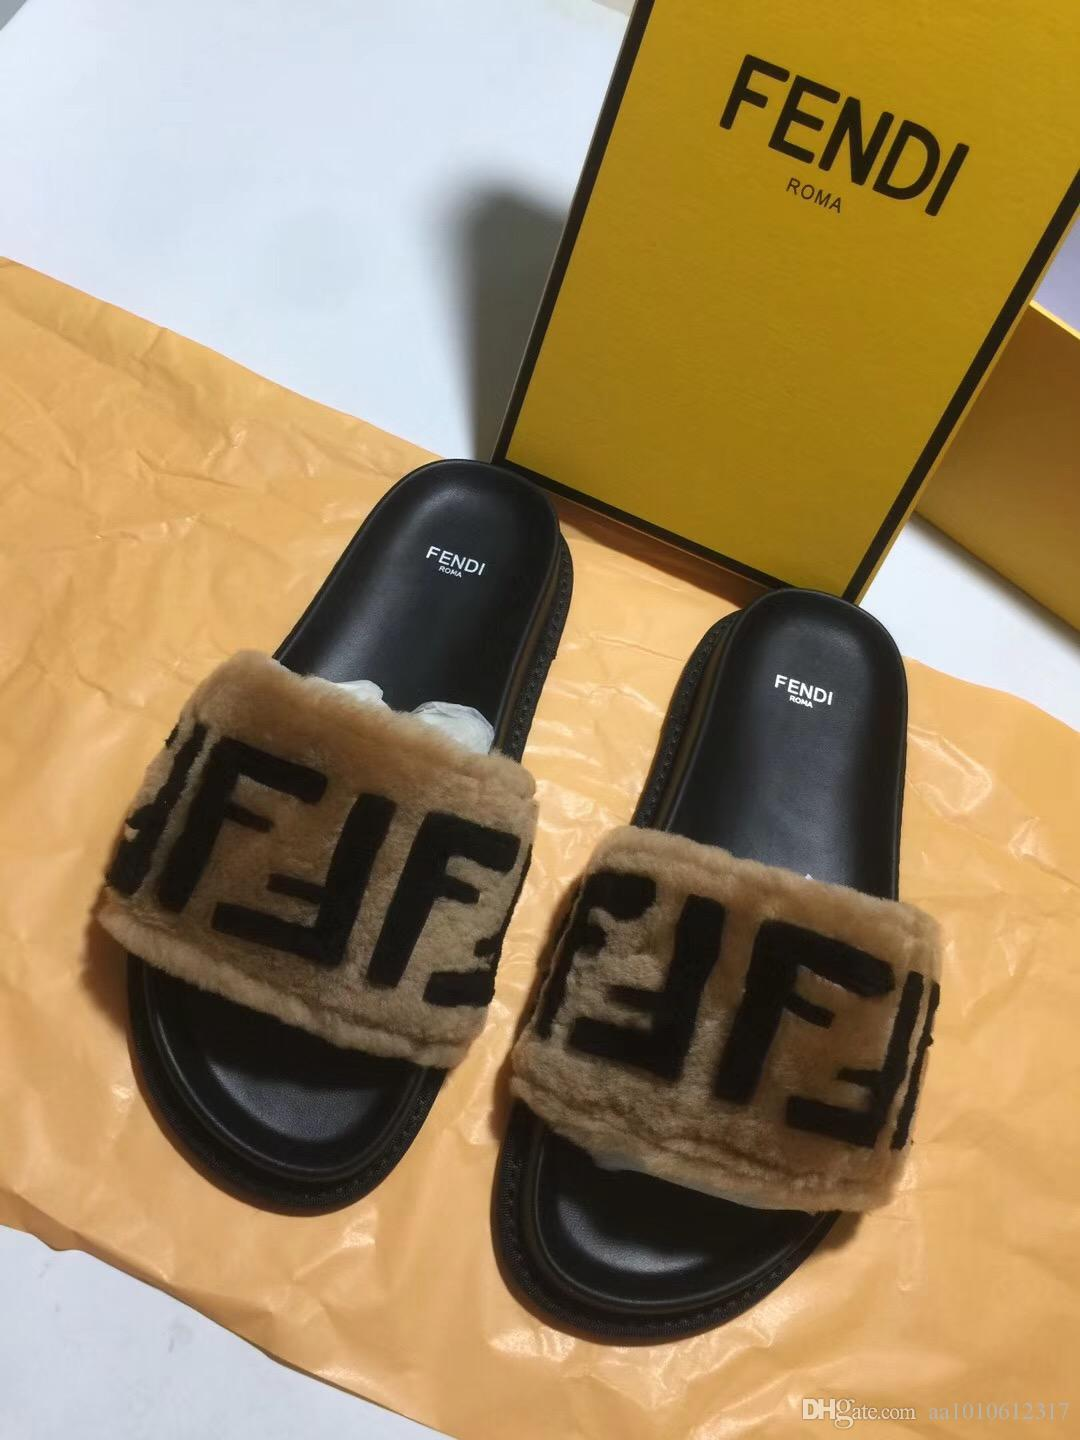 270ba40fe493eb 2019 Flip Flops Men Sandals Shoes For Casual Walking Beach Slides EVA  Massage Slippers Designer Flats Male Summer Mens Shoes Shoe Sale Shoes Uk  From ...